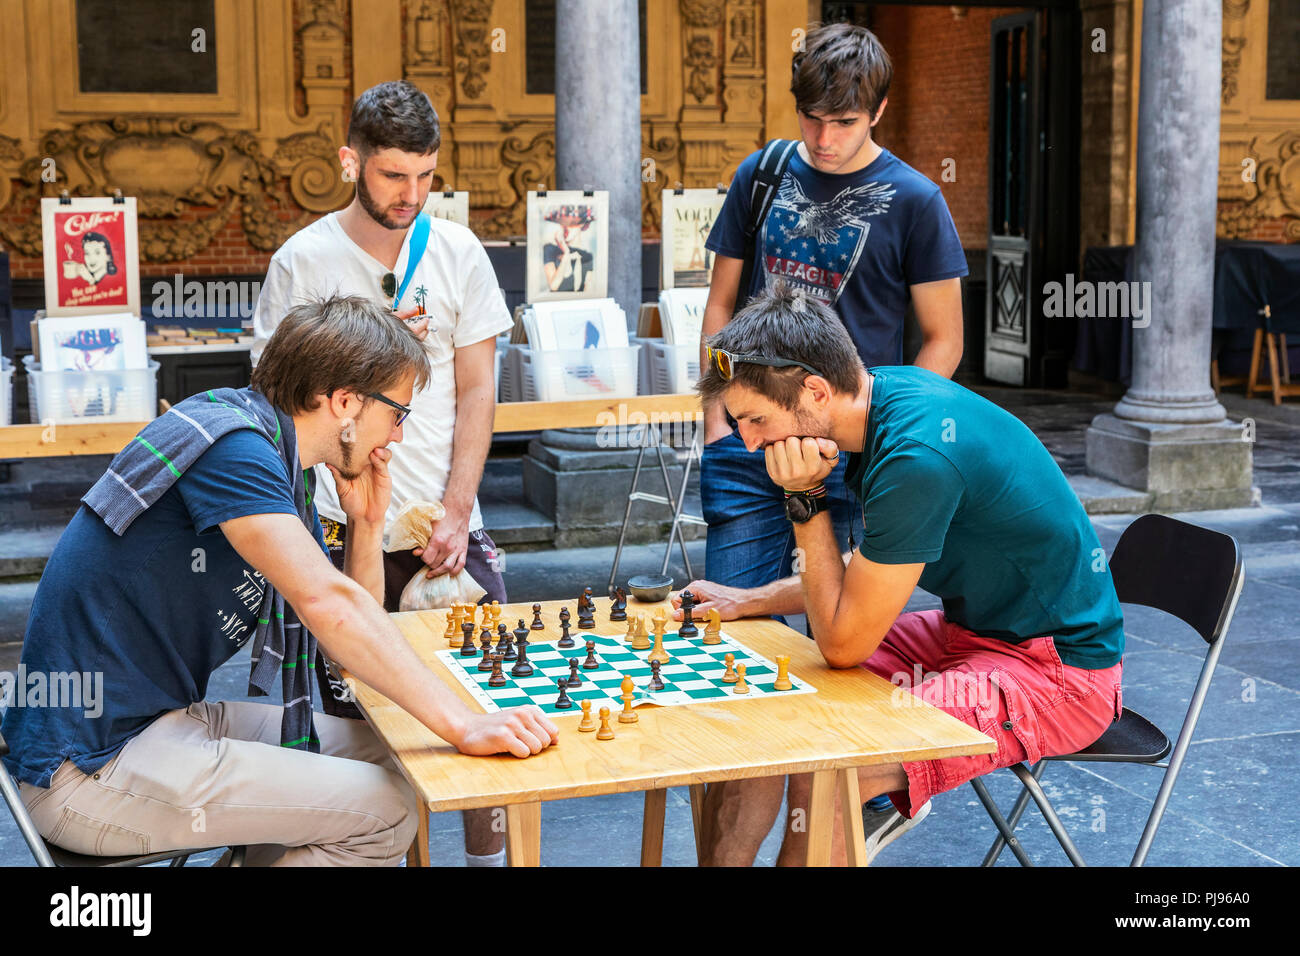 Two men playing chess in the old book, music and antiques market, held in Vielle Bourse de Lille, Place du General de Gaulle, Lille, France - Stock Image